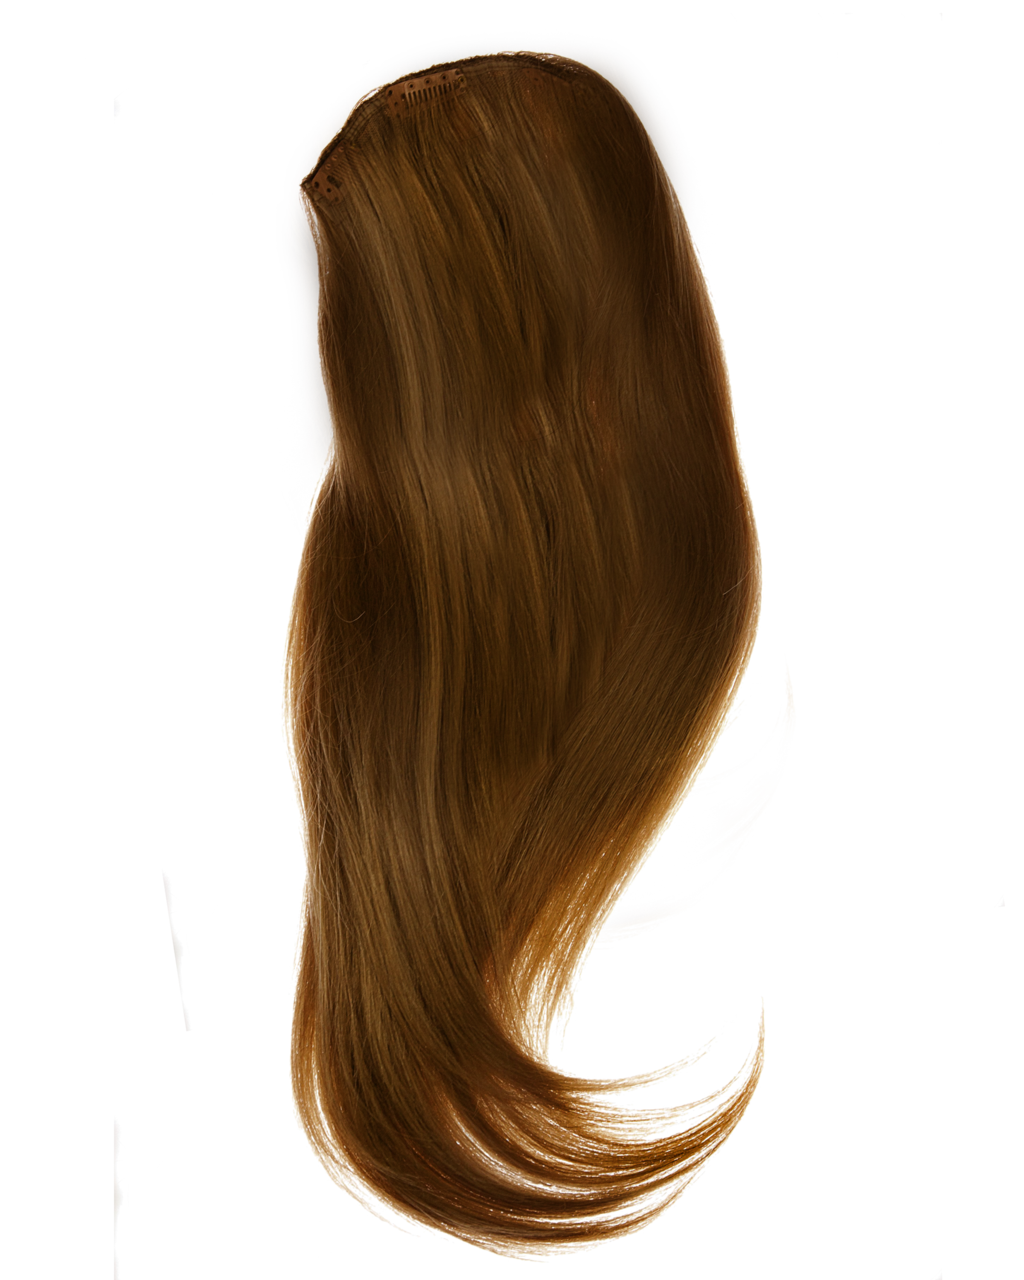 Girl wig png. Hair images women and